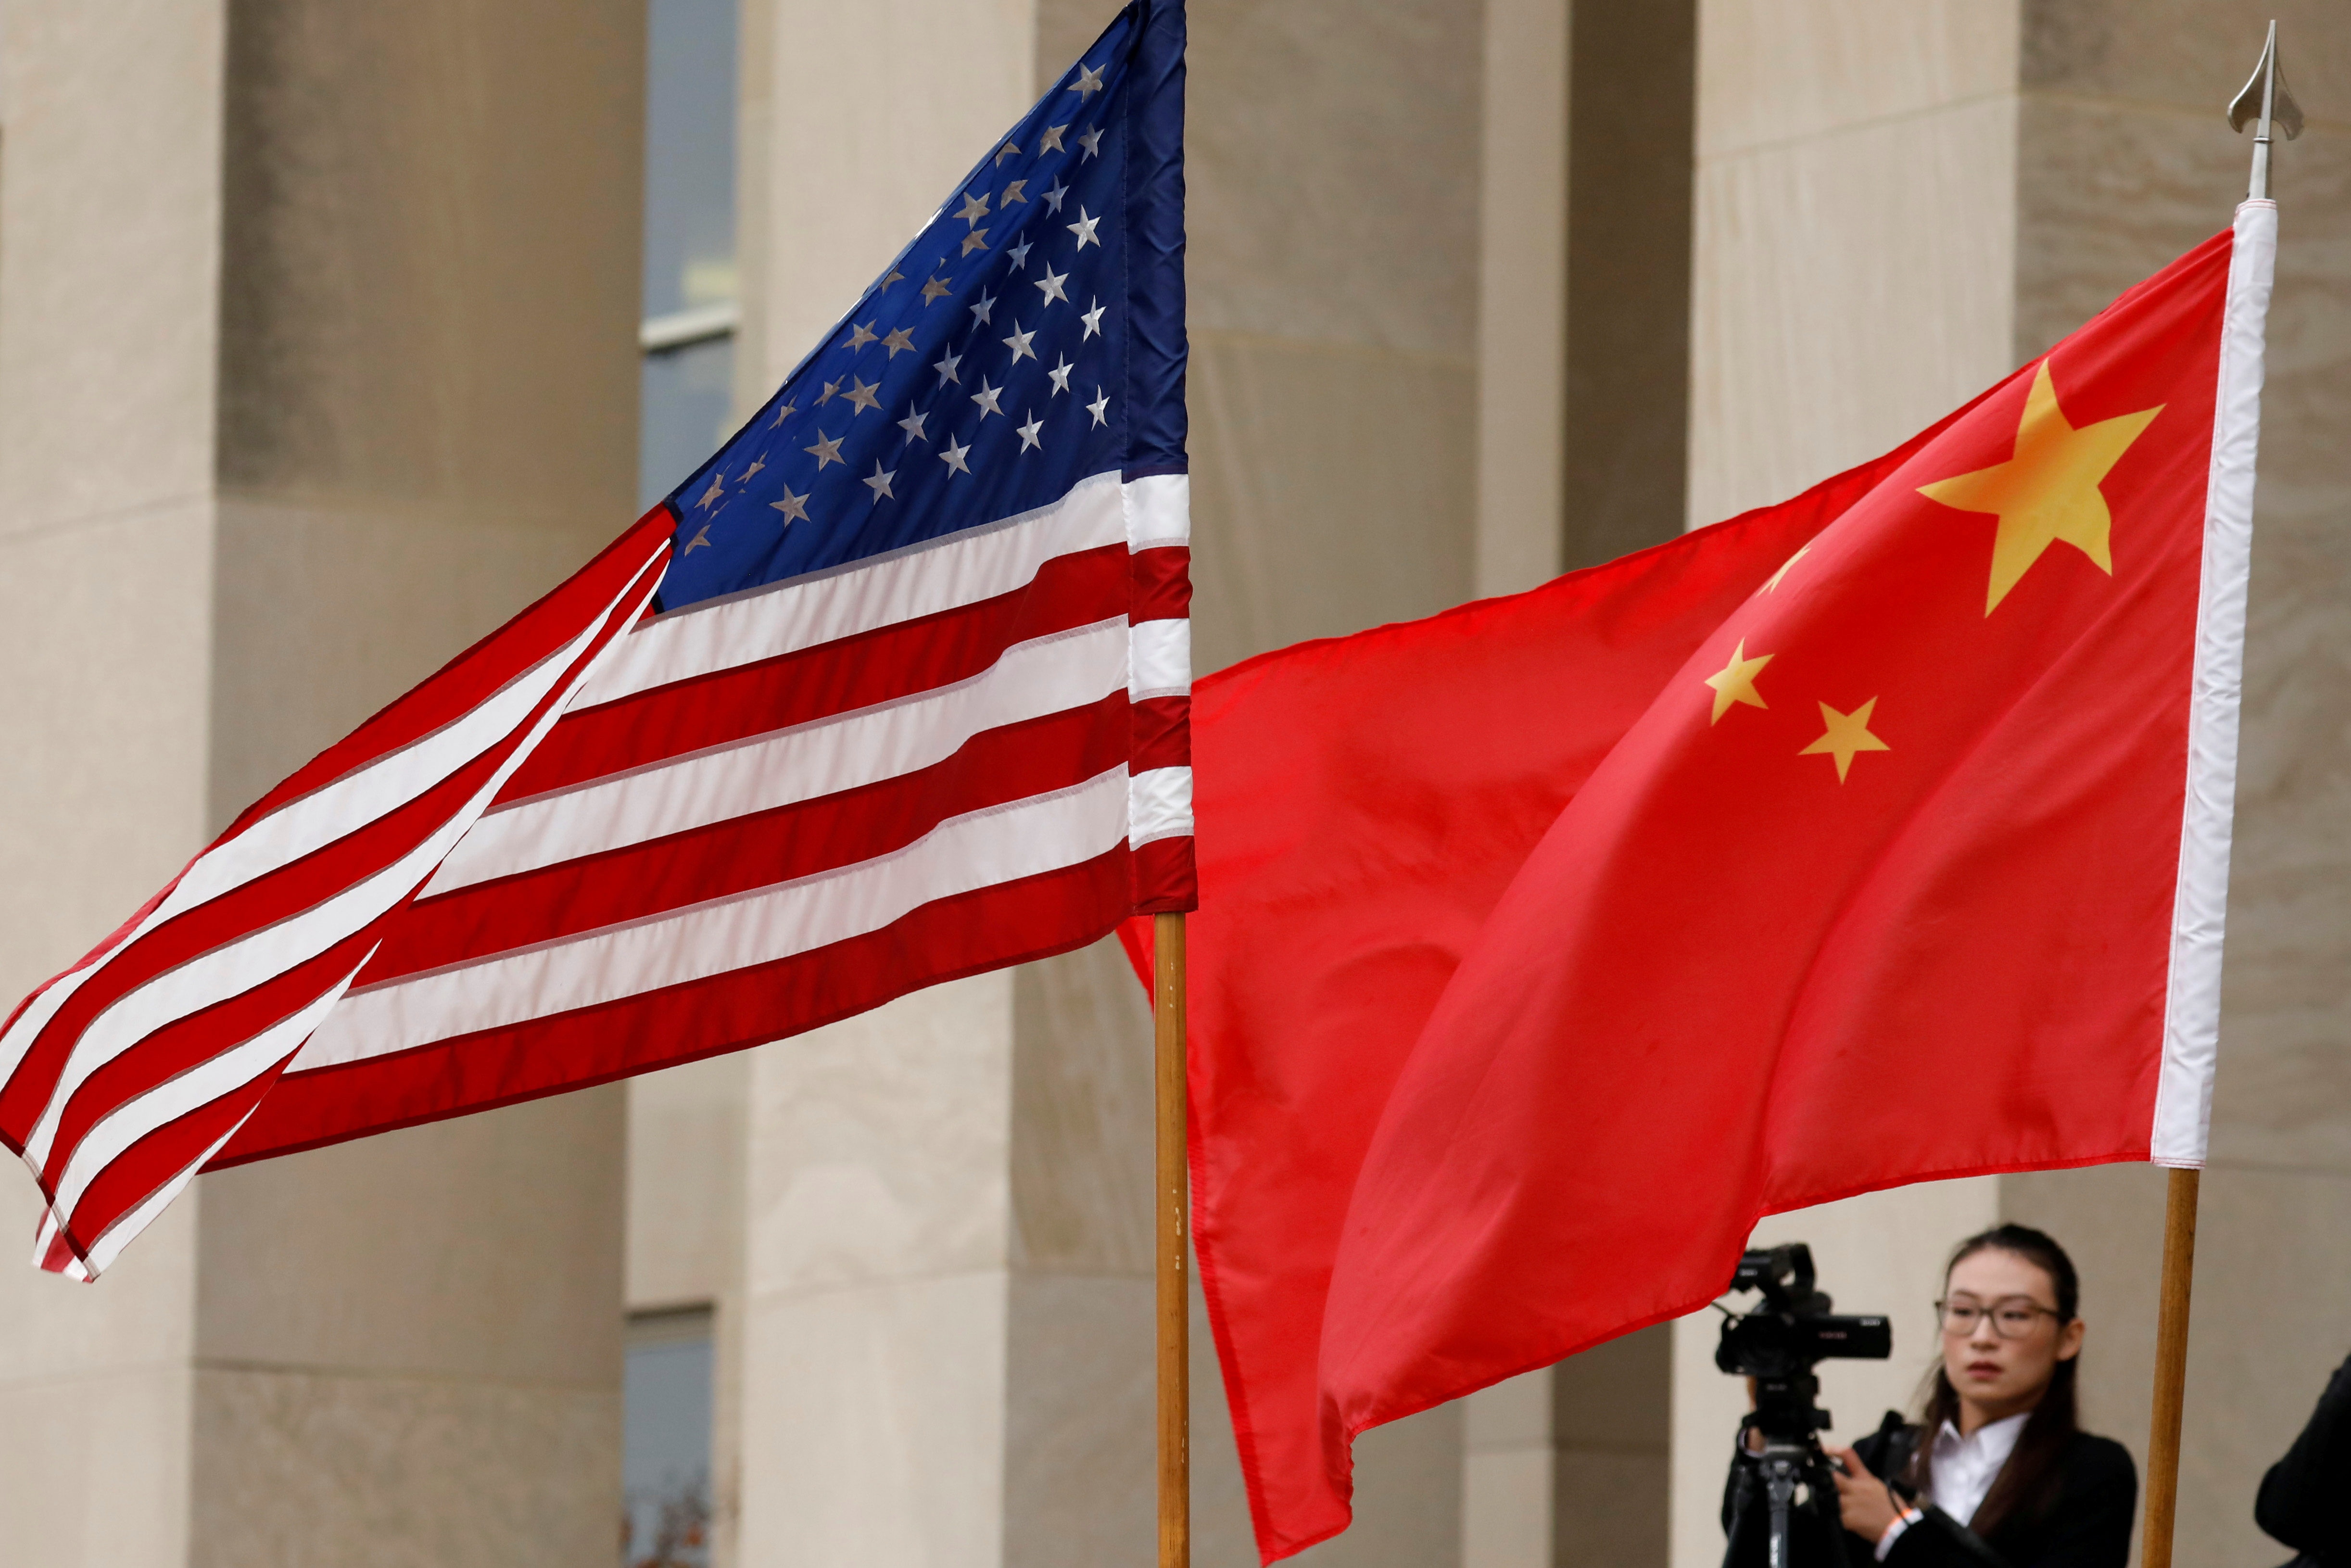 U.S. and Chinese flags are seen before a meeting between senior defence officials from both countries at the Pentagon in Arlington, Virginia, U.S., November 9, 2018. REUTERS/Yuri Gripas